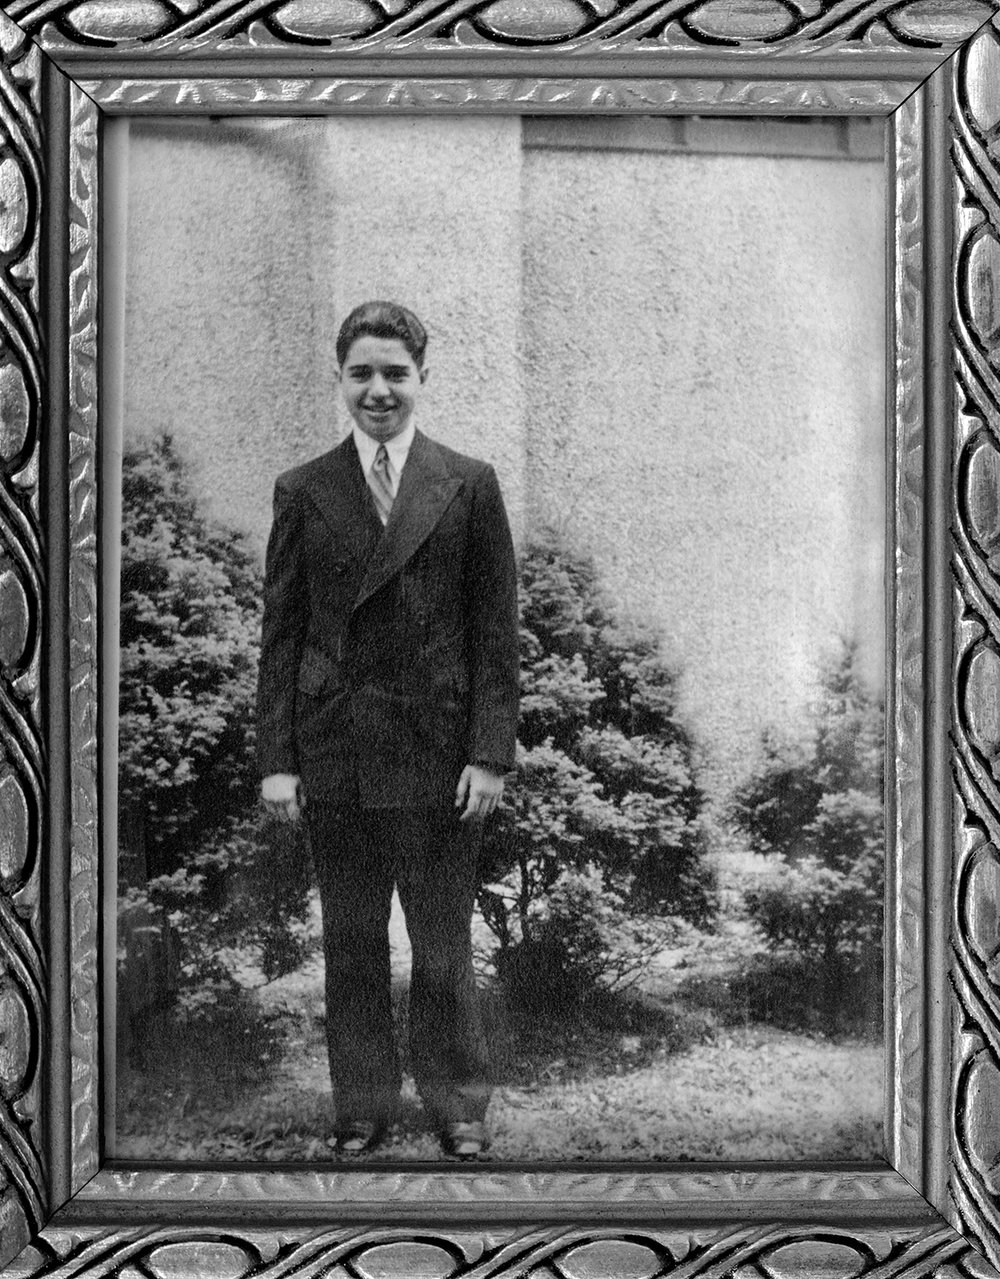 Martin Lazarus Greenberg (died at 19 during WWII)